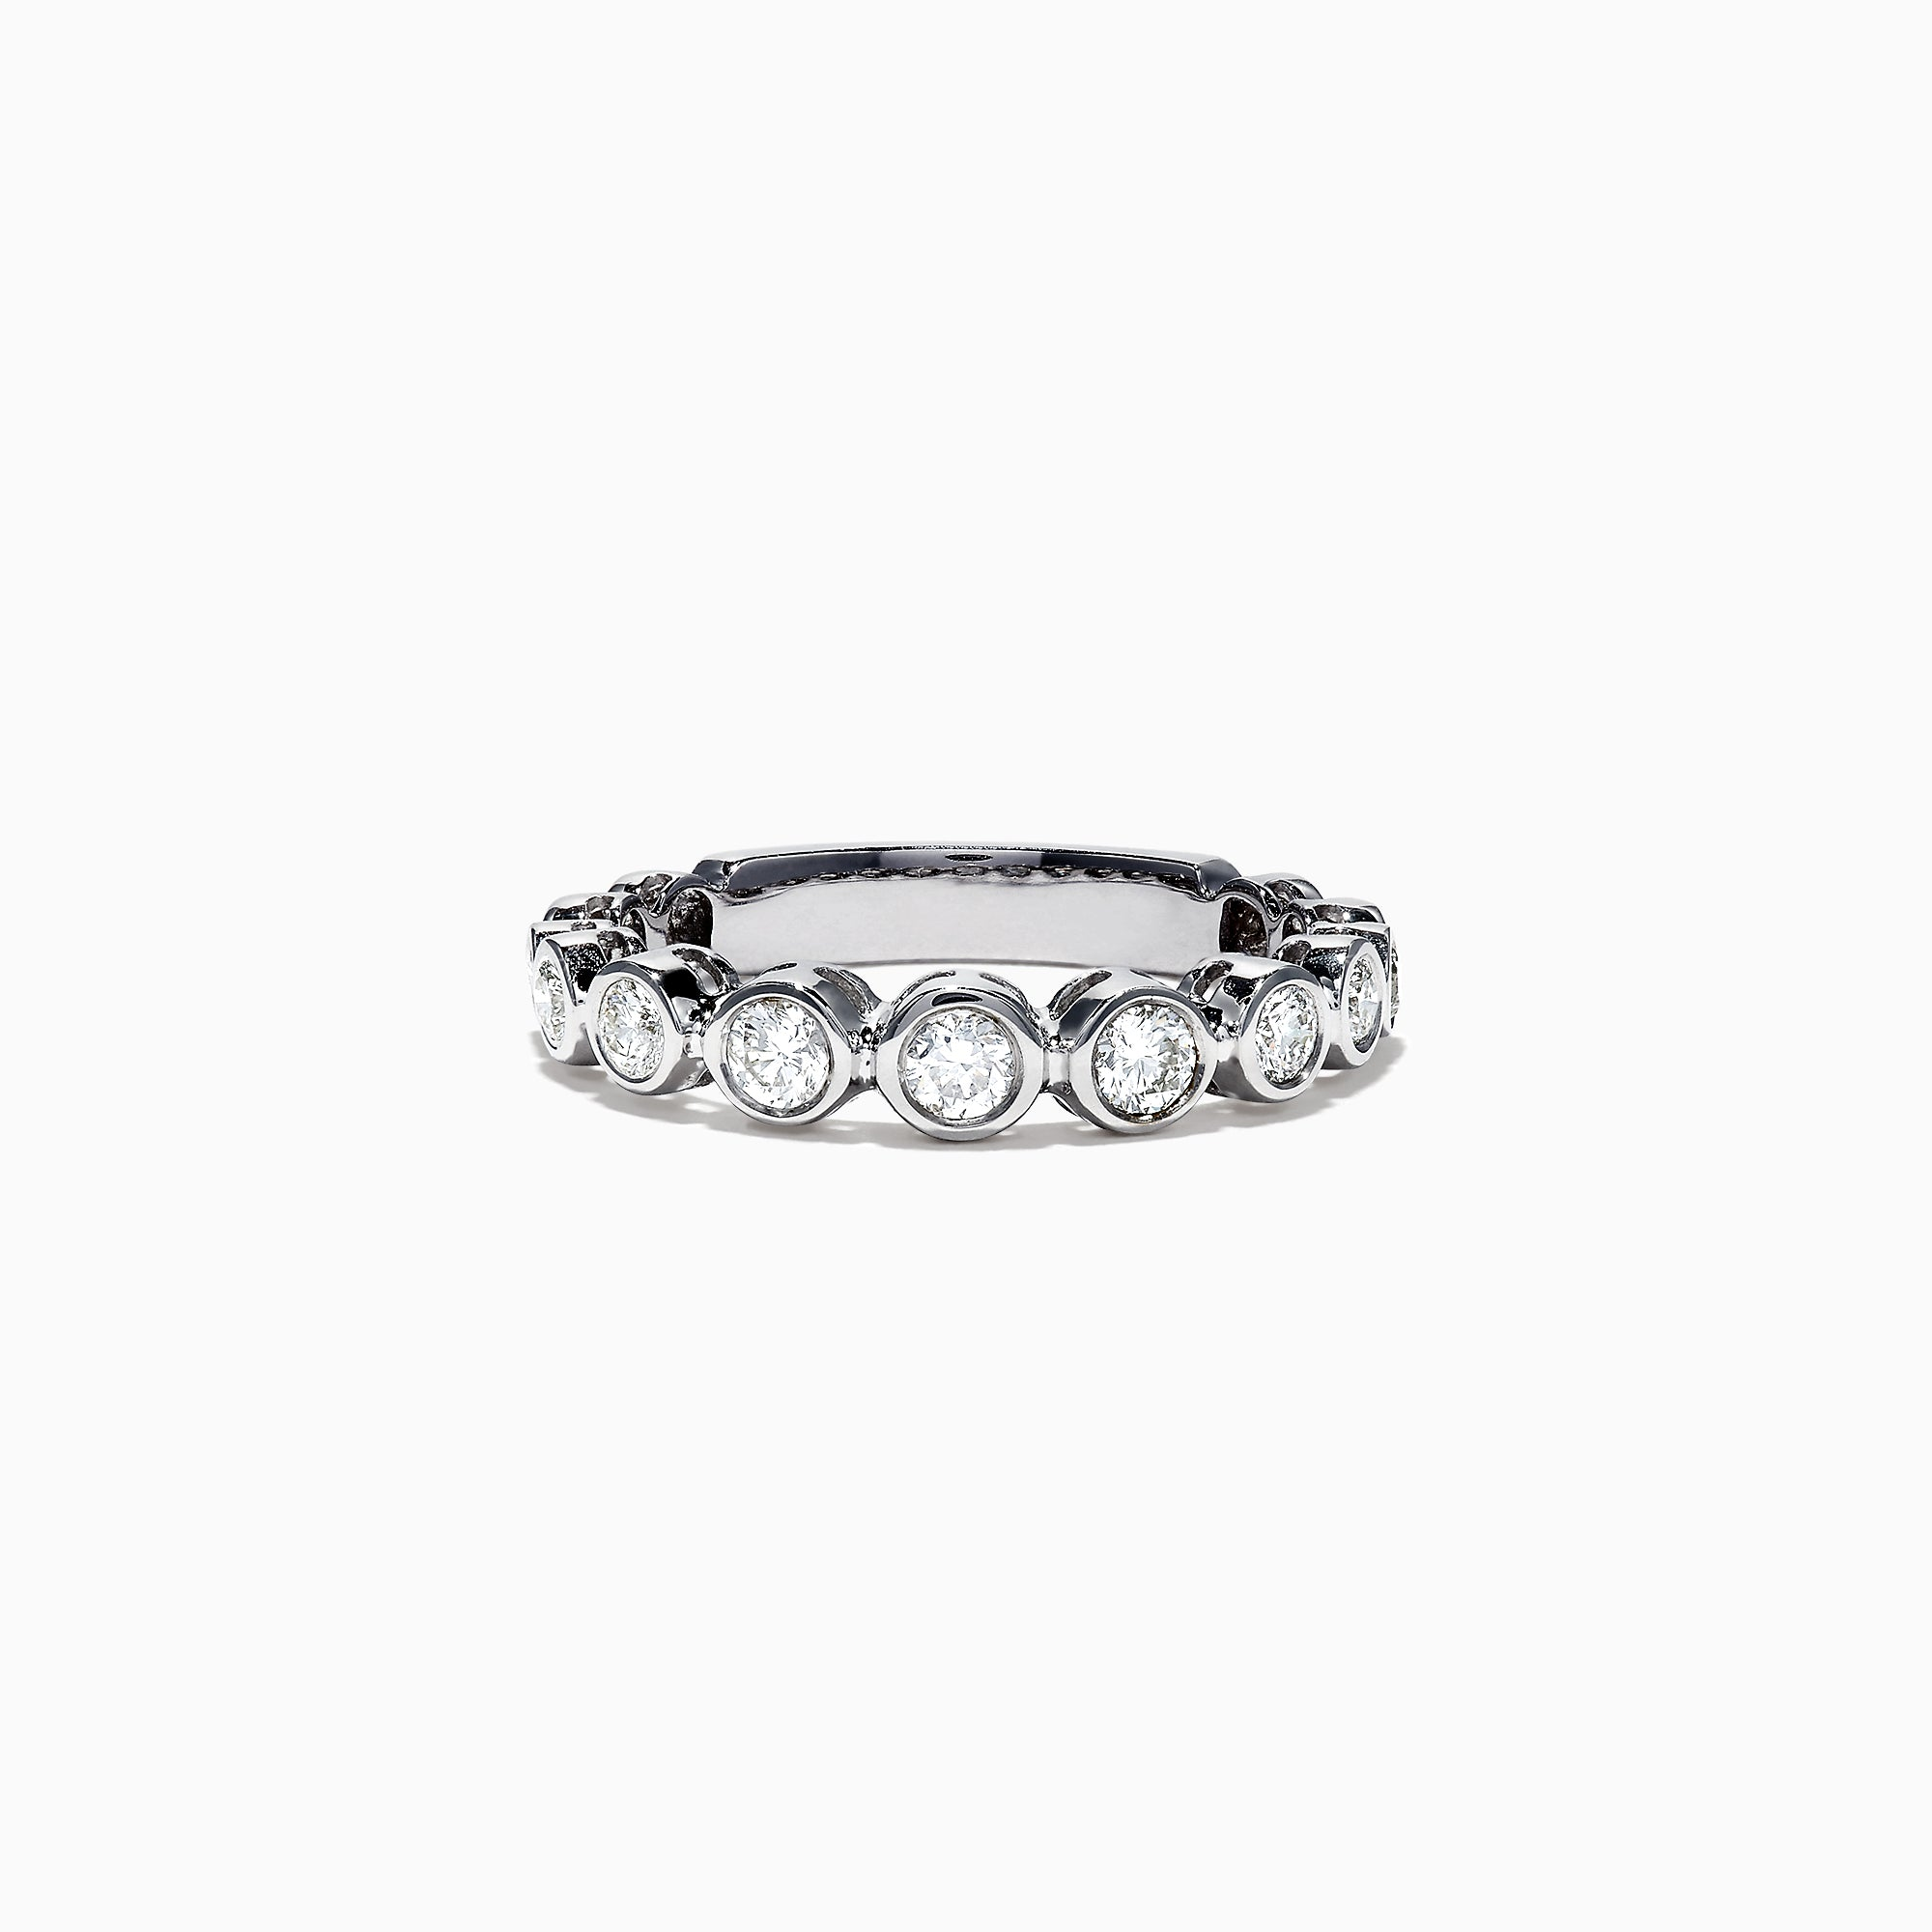 Effy Pave Classica 14K White Gold Bezel Set Diamond Ring, 0.49 TCW